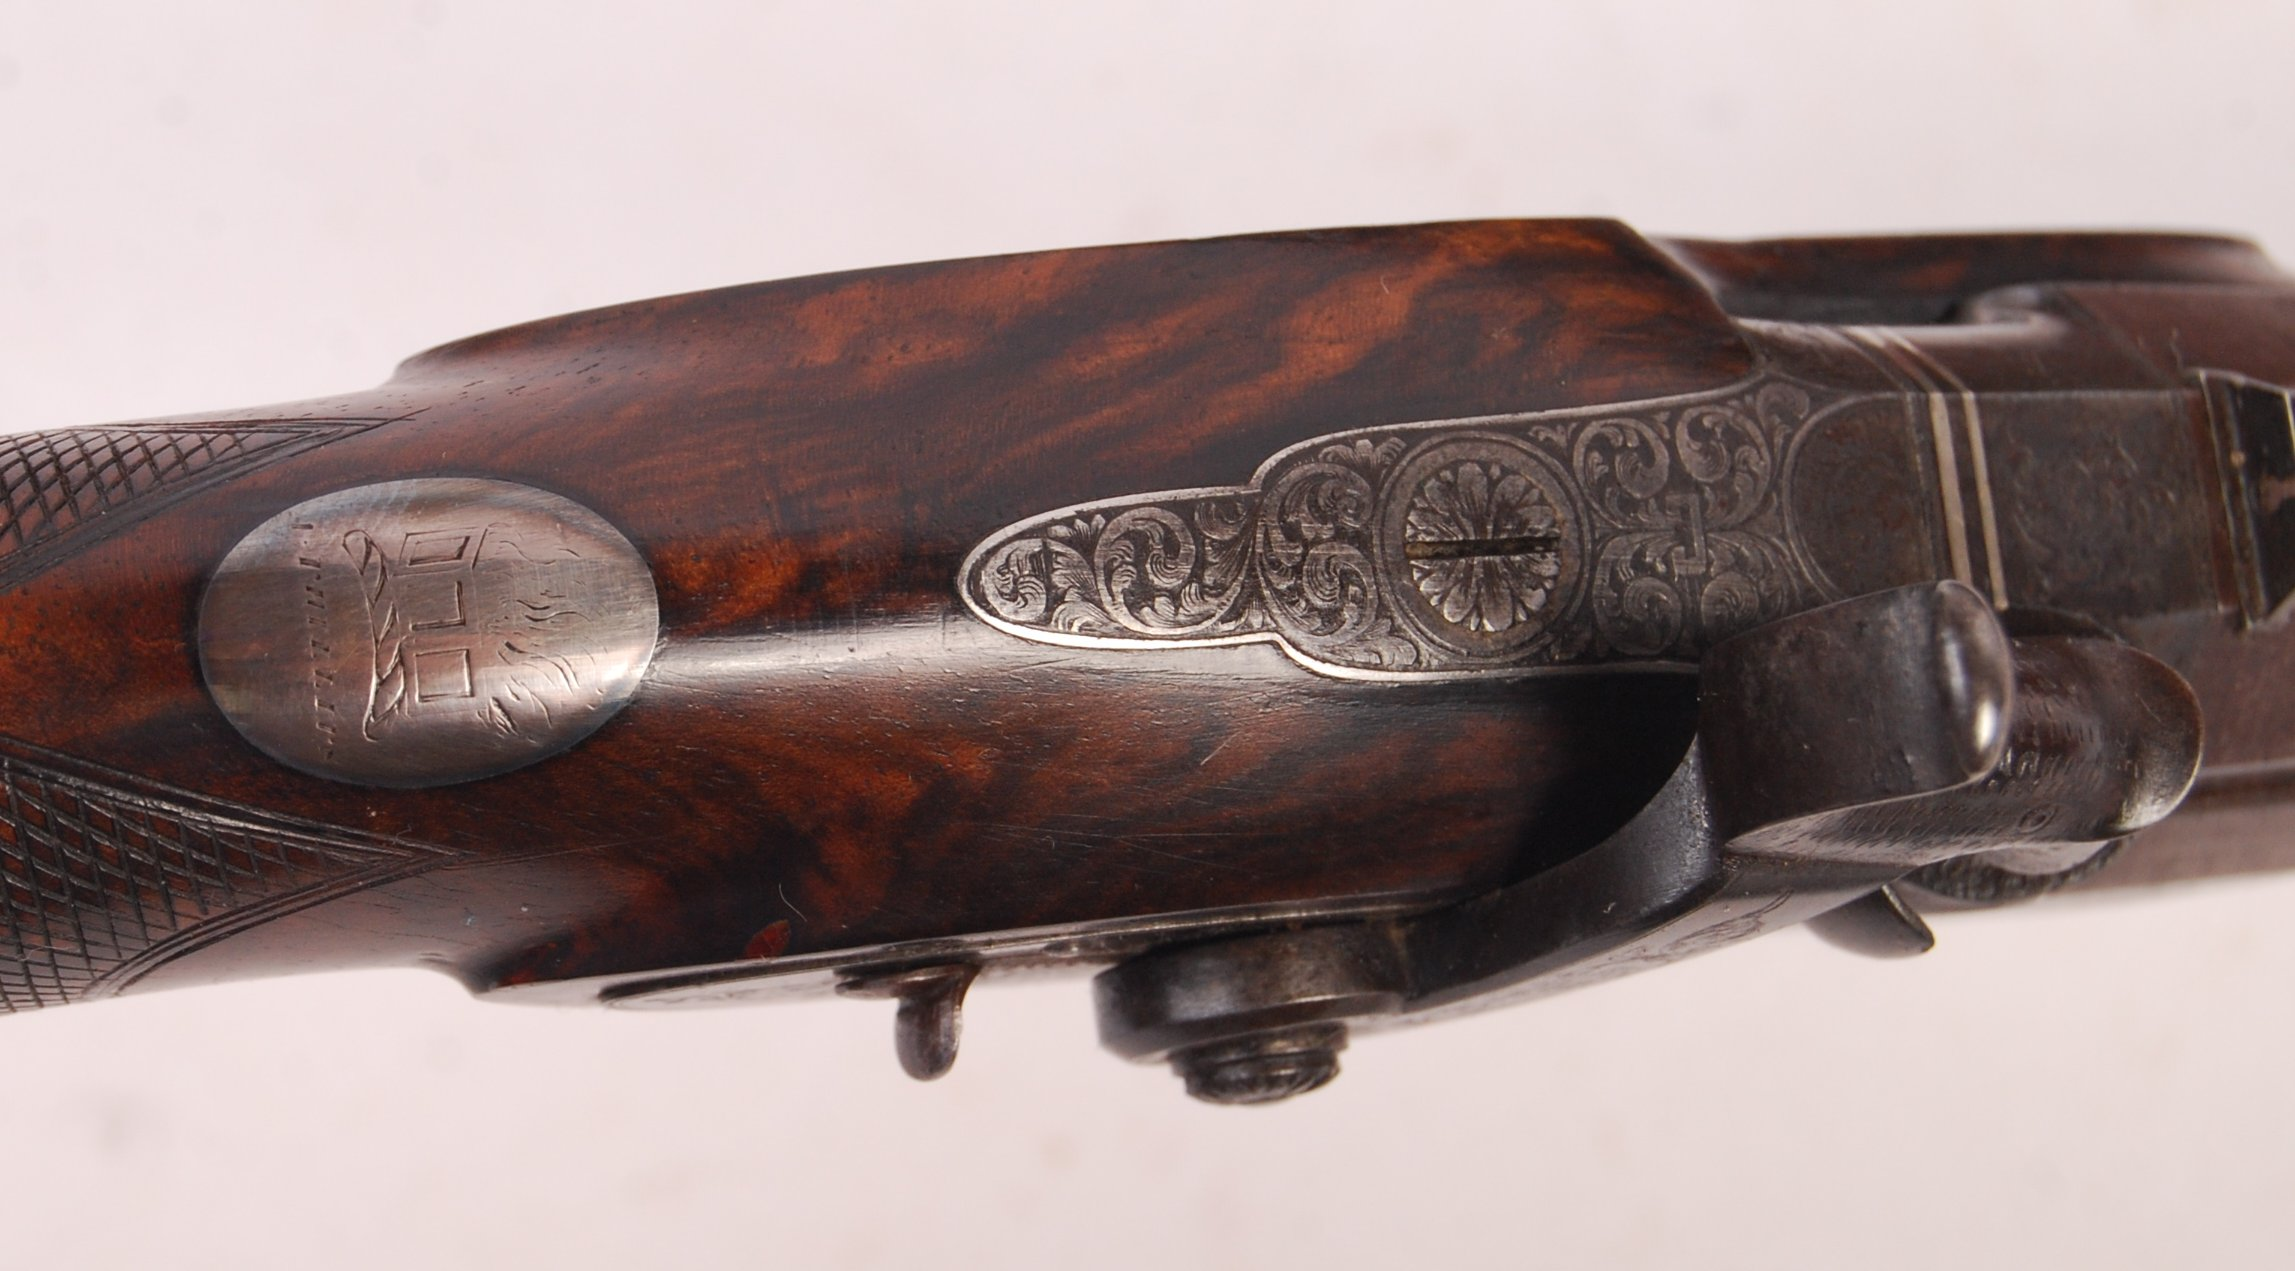 Lot 200 - SUPERB PAIR OF 19TH CENTURY DUELLING PISTOLS BY CH